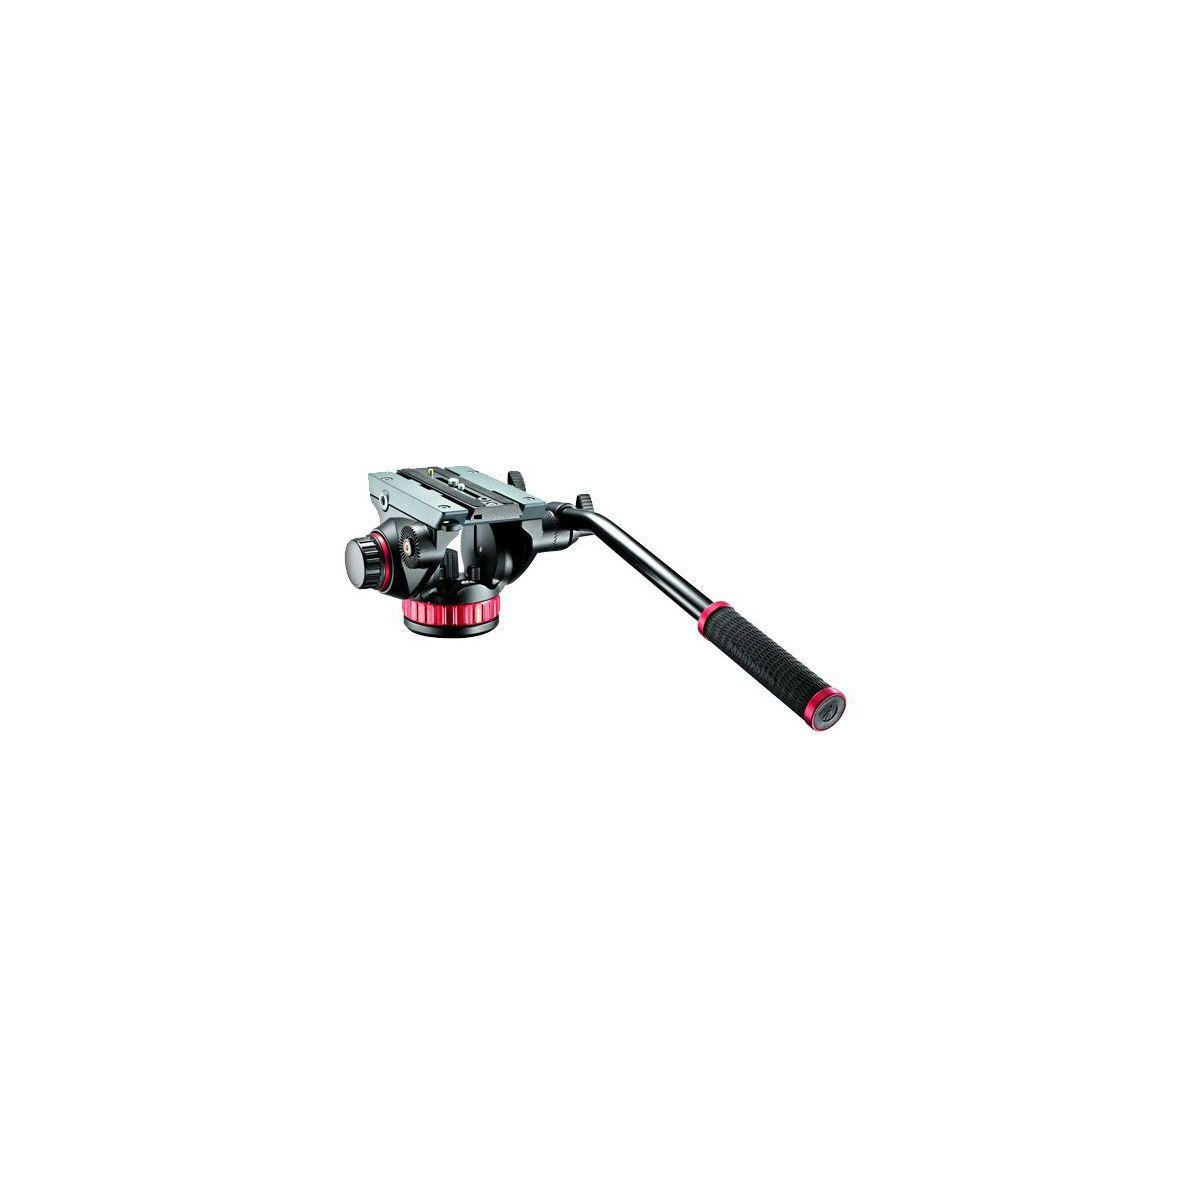 Rotule tr�pied manfrotto rotule mvh502ah - 7% de remise imm�diate avec le code : school7 (photo)